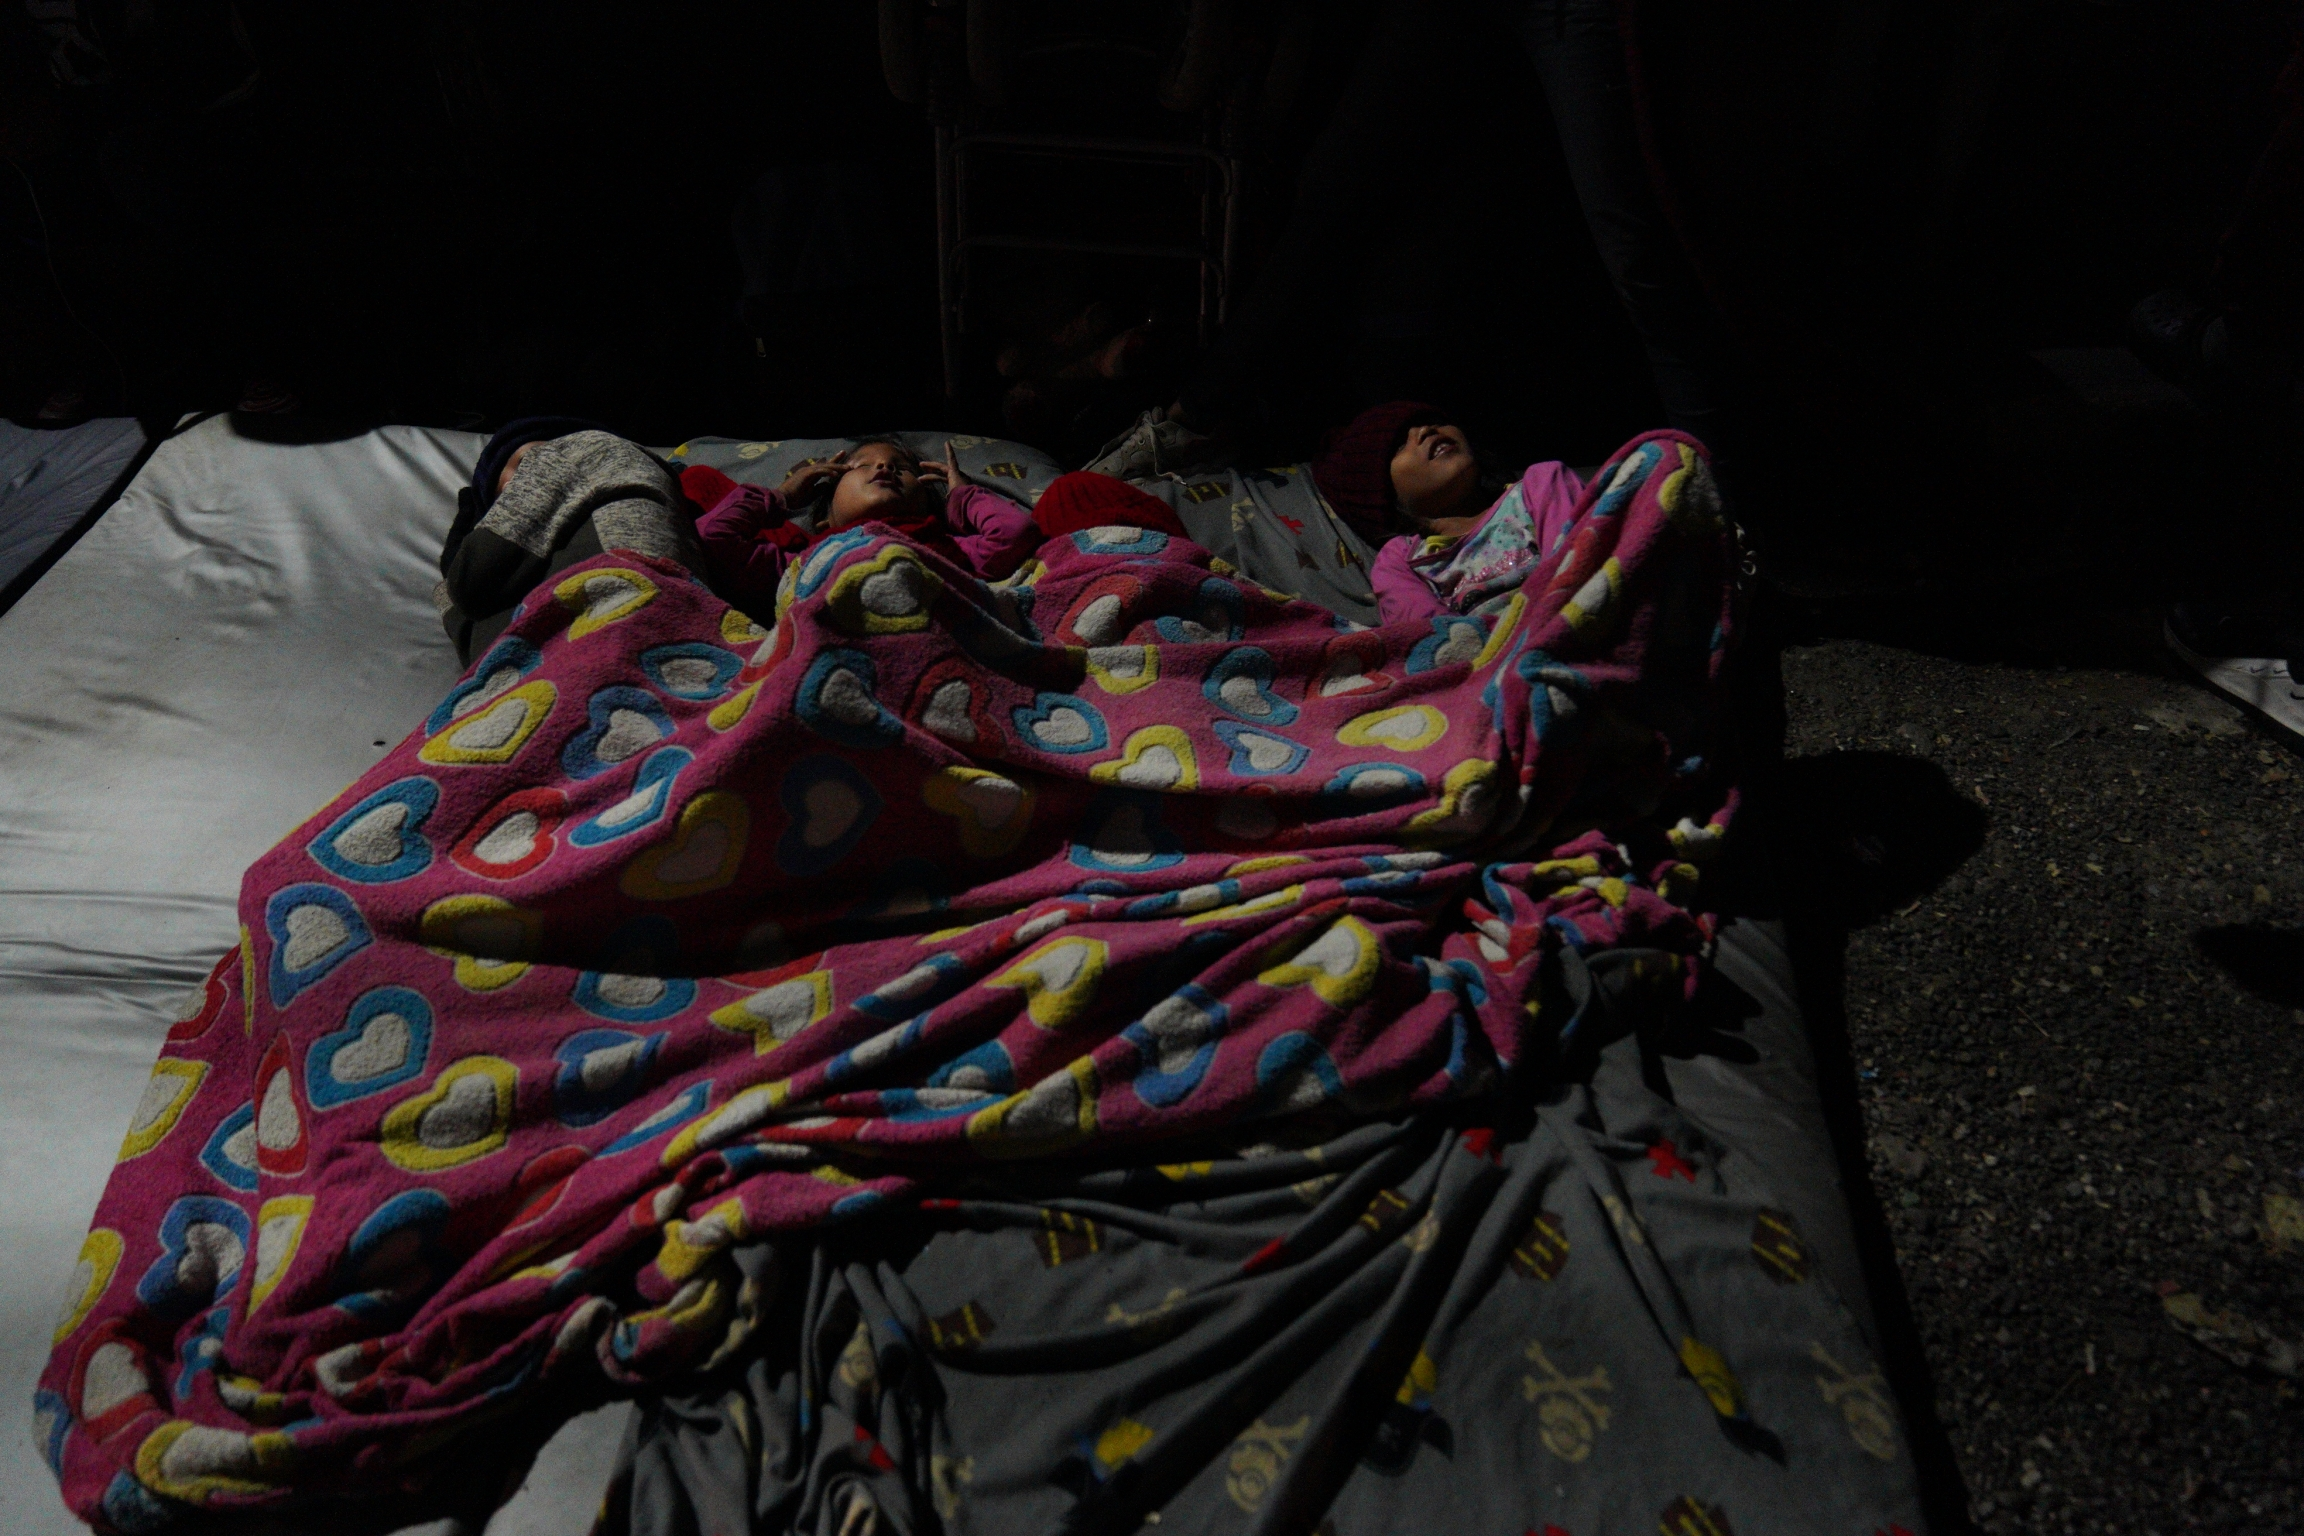 A family sleeps in a blanket on the street.